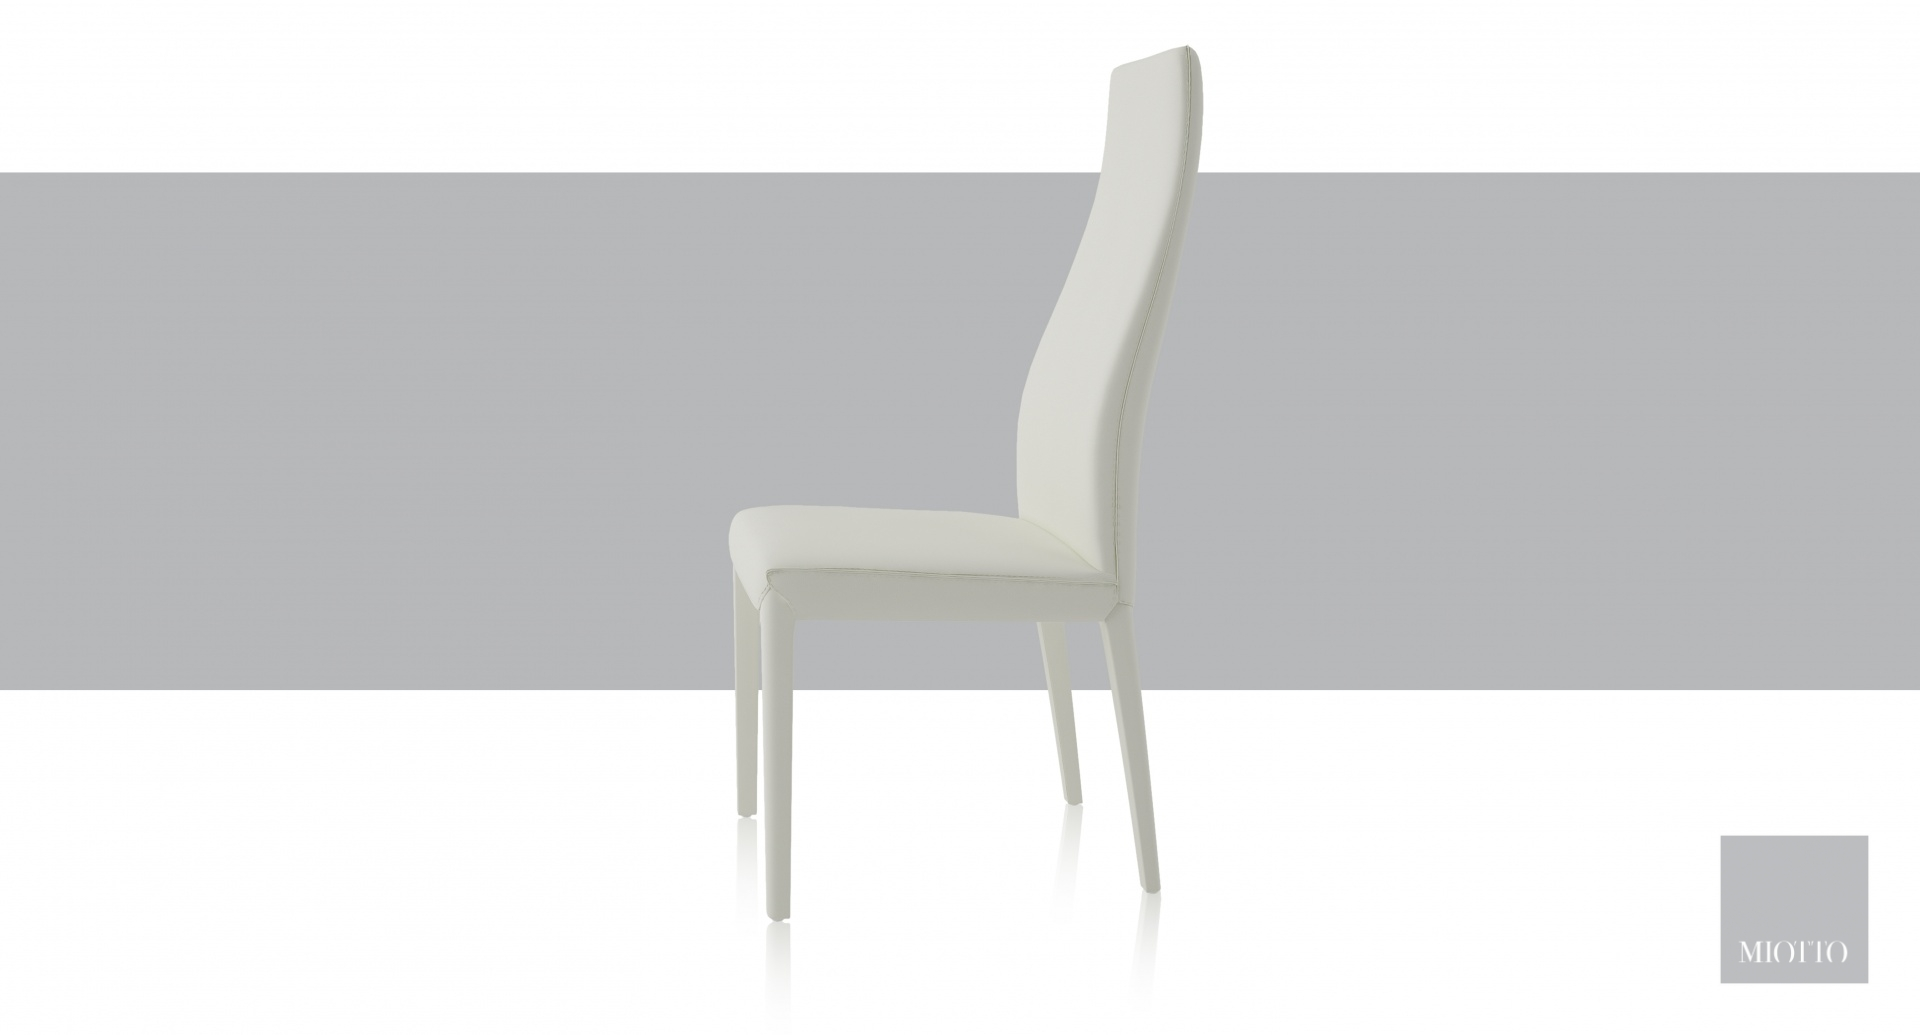 miotto_quinto DC white T miotto dining chair furniture2